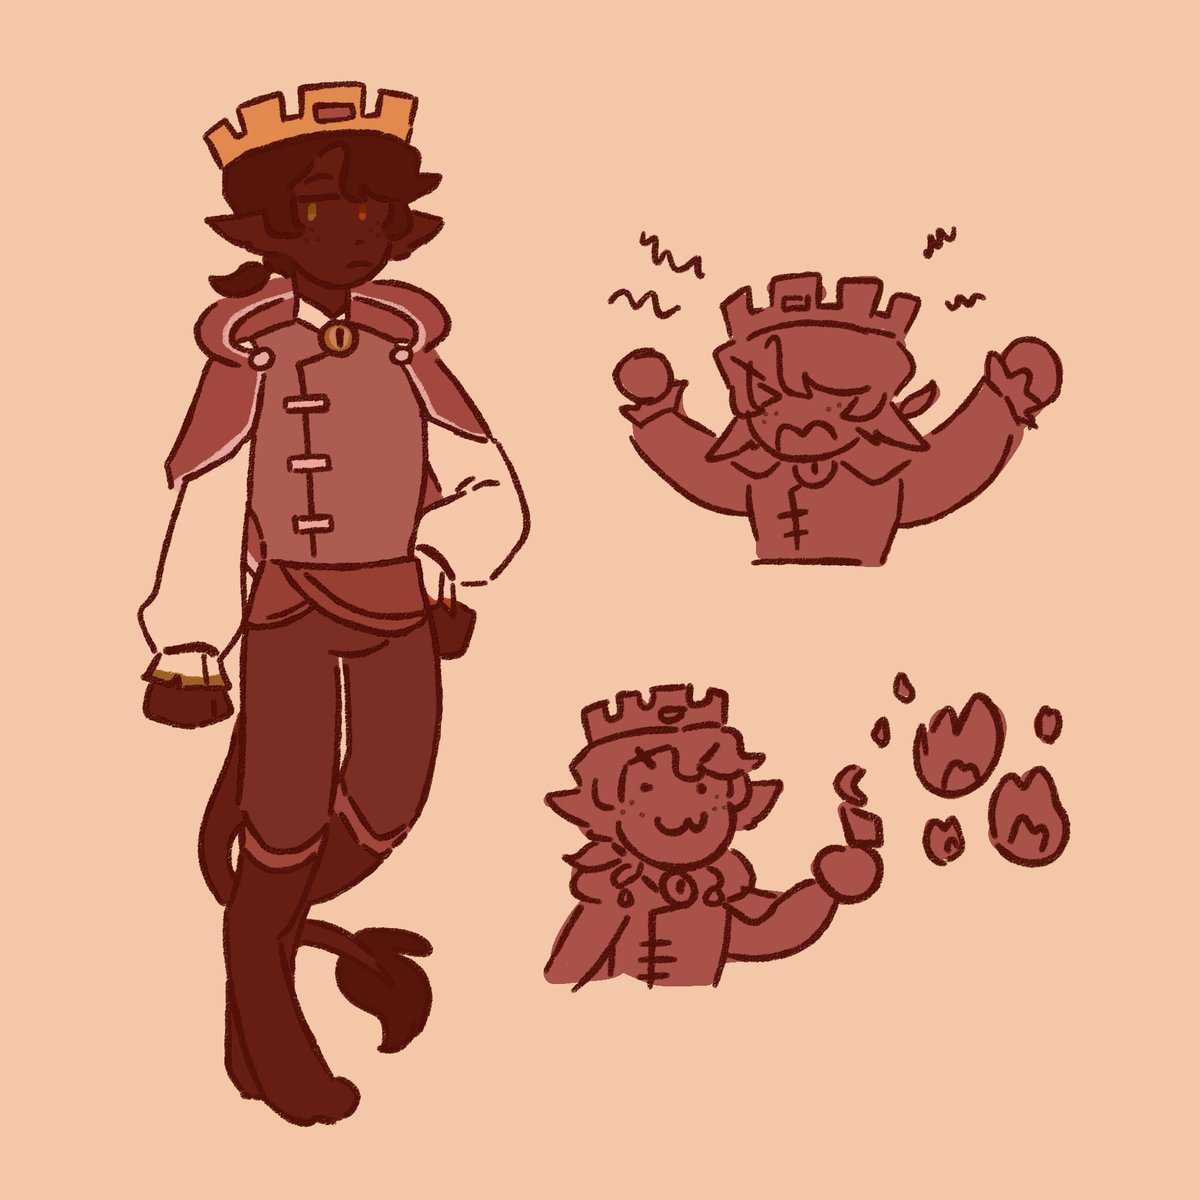 the other design i did wasn't prince-like enough, so here's an updated version of osmp!ranboo :D #ranboofanart https://t.co/jamHuybRtc